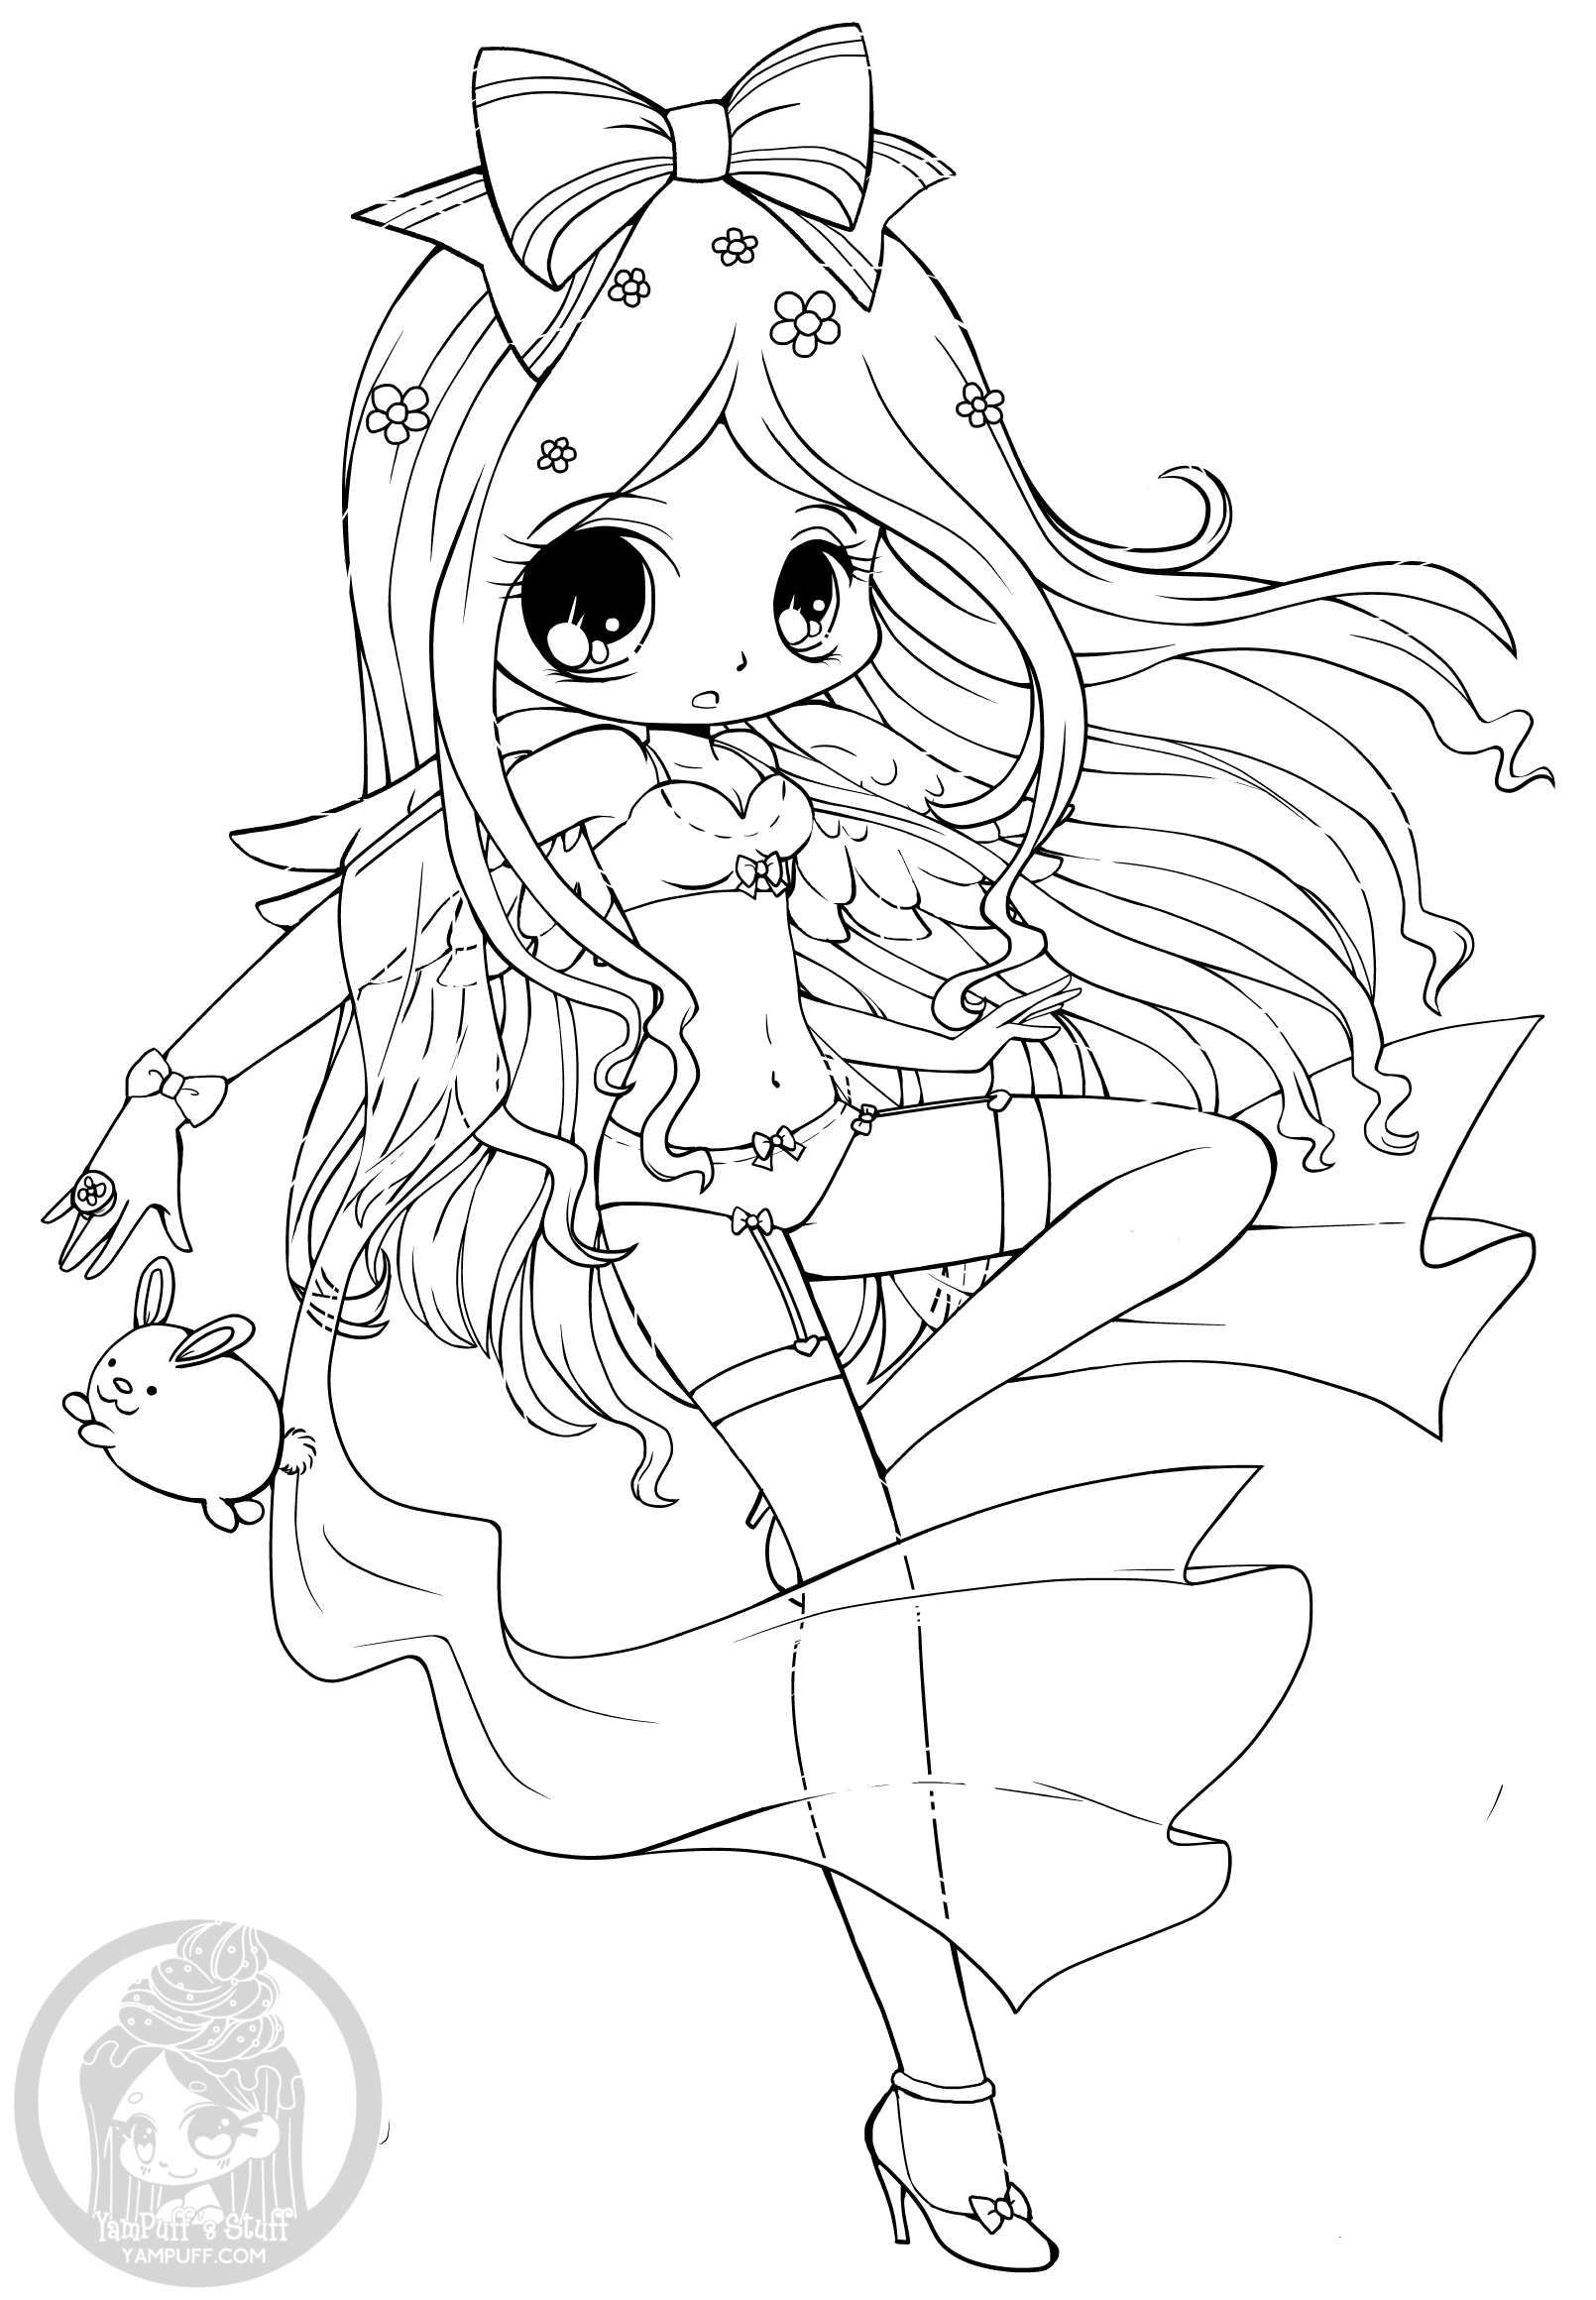 coloring pages of chibi girls chibis free chibi coloring pages yampuff39s stuff chibi coloring of pages girls